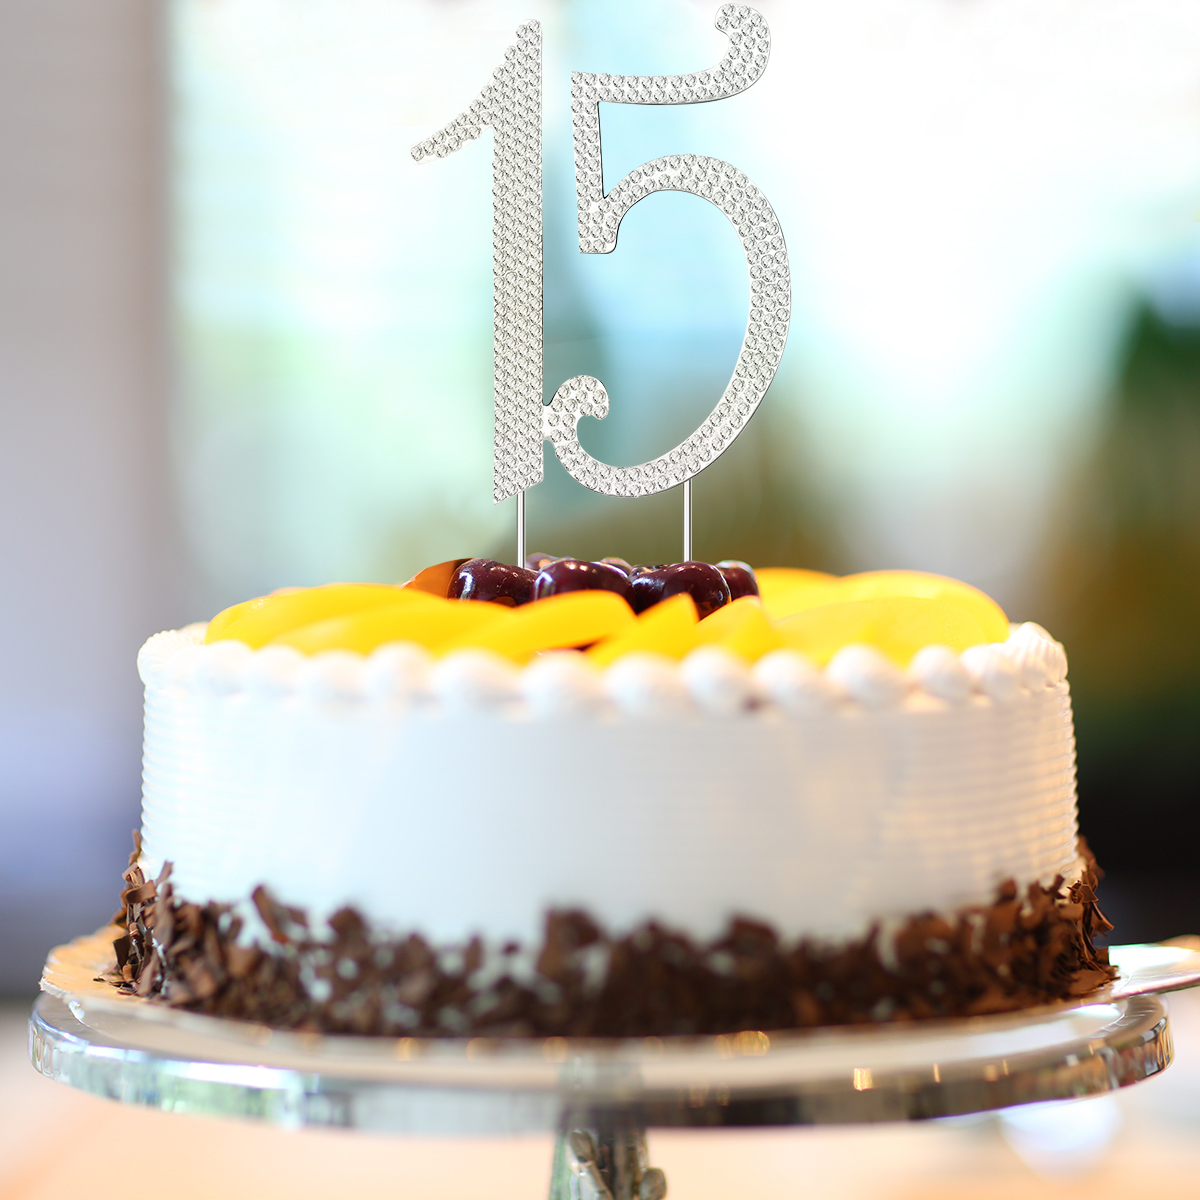 Outstanding 15 Cake Topper For 15Th Birthday Party Or Anniversary Crystal Funny Birthday Cards Online Inifofree Goldxyz